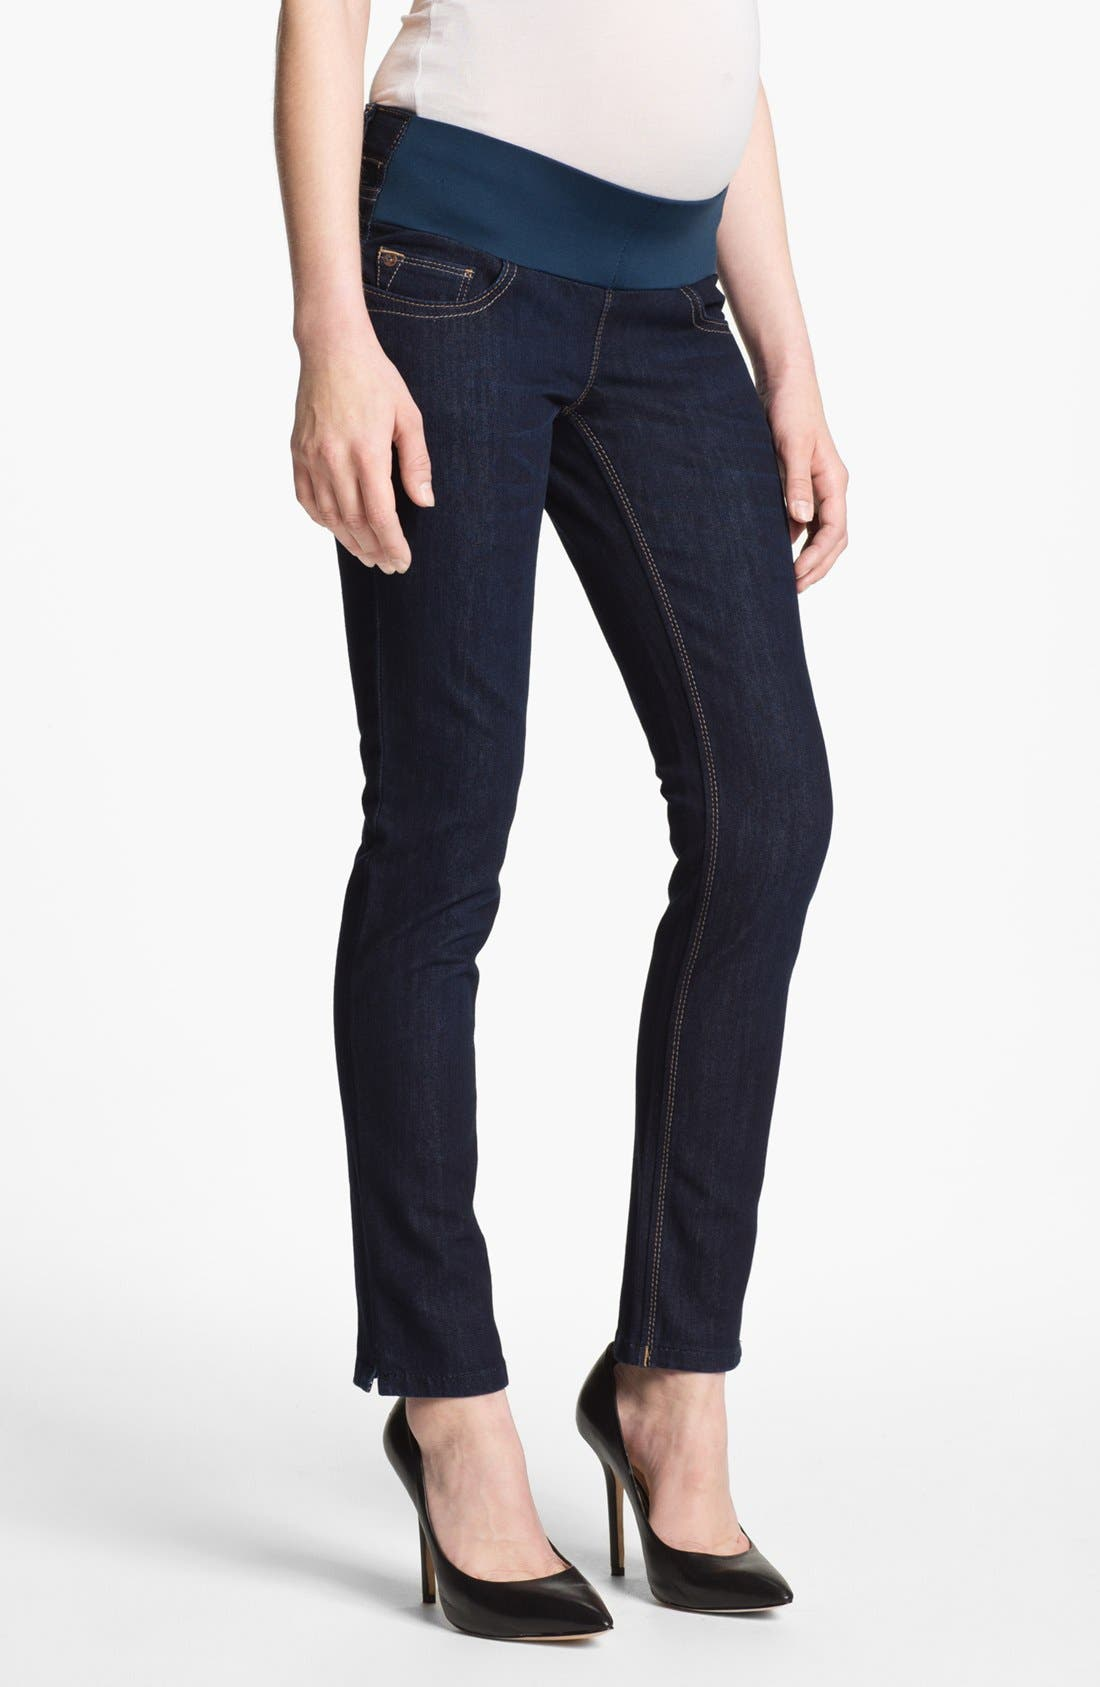 Alternate Image 1 Selected - DL1961 'Angel' Maternity Ankle Skinny Jeans (Marnier)